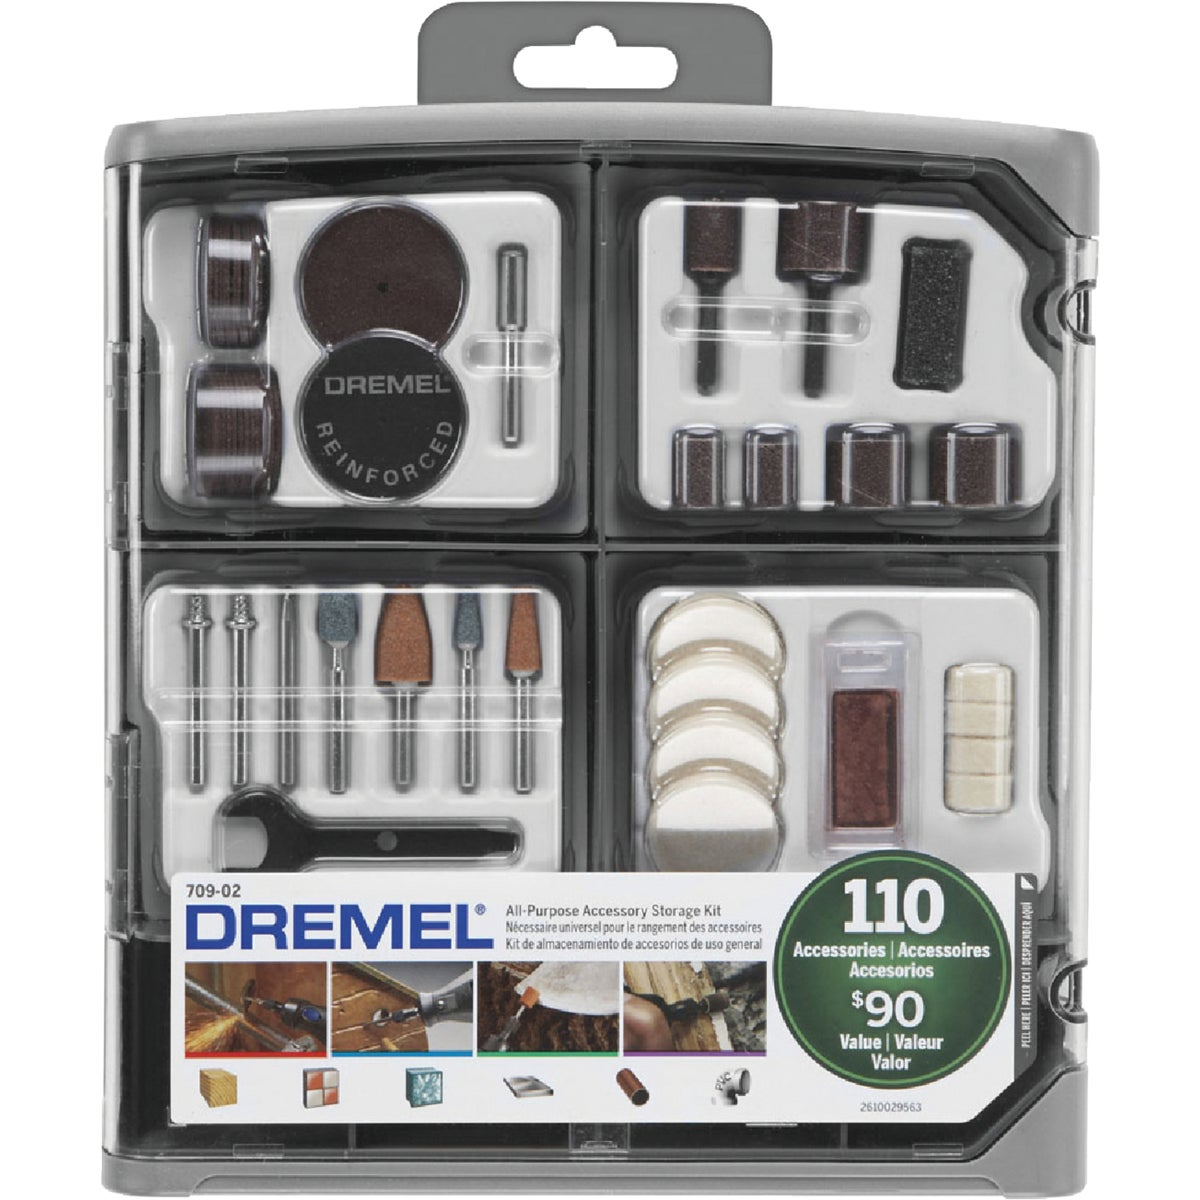 110PC ACCESSORY KIT - 709-01 by Dremel Mfg Co